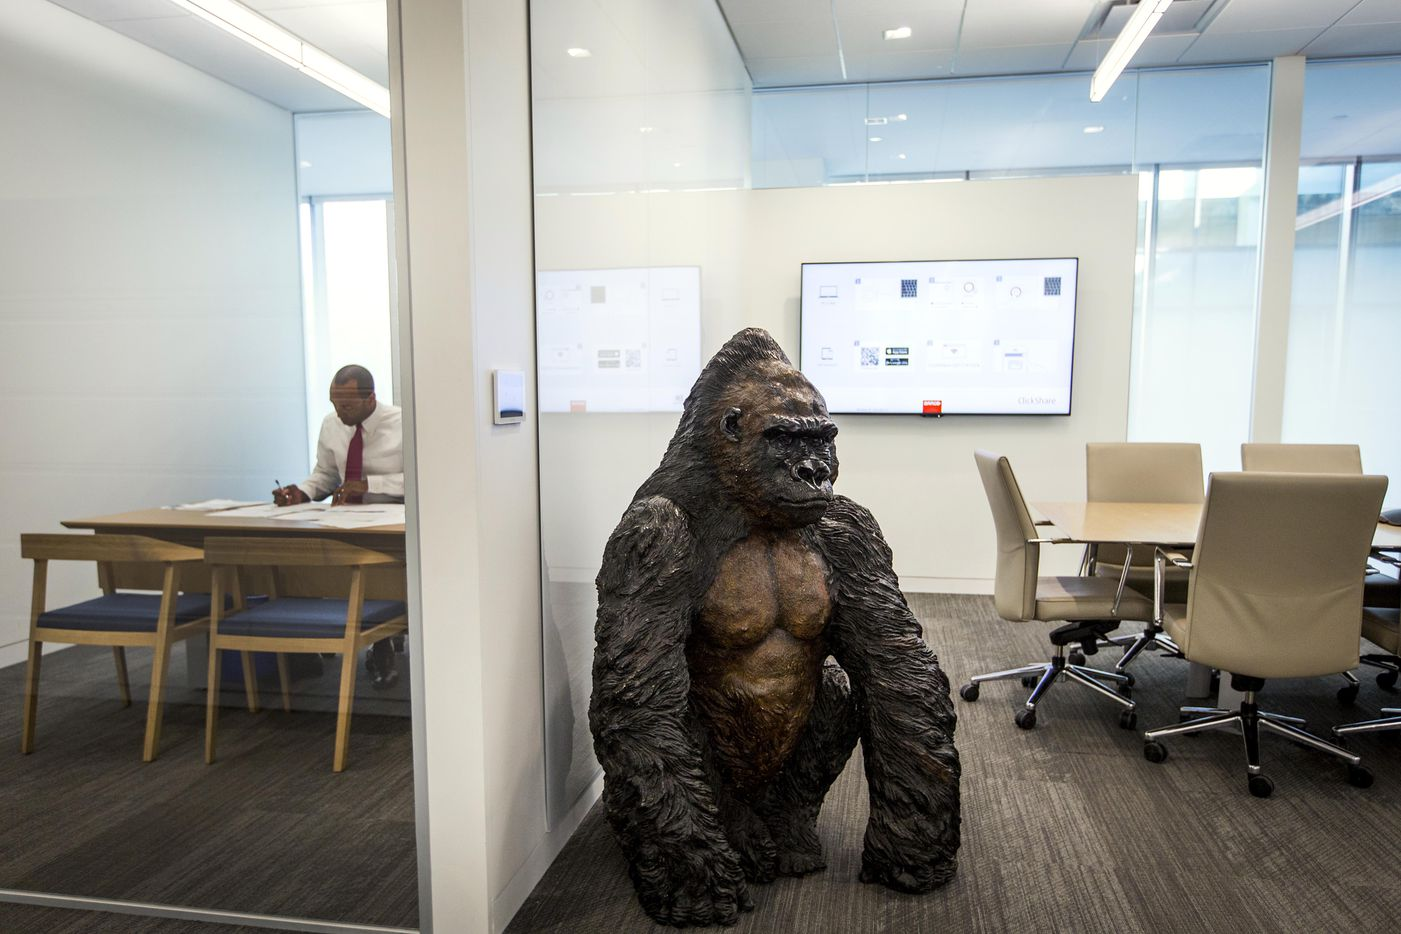 Perot company team members who close a major deal get a big gorilla statue outside their office door to signal success.